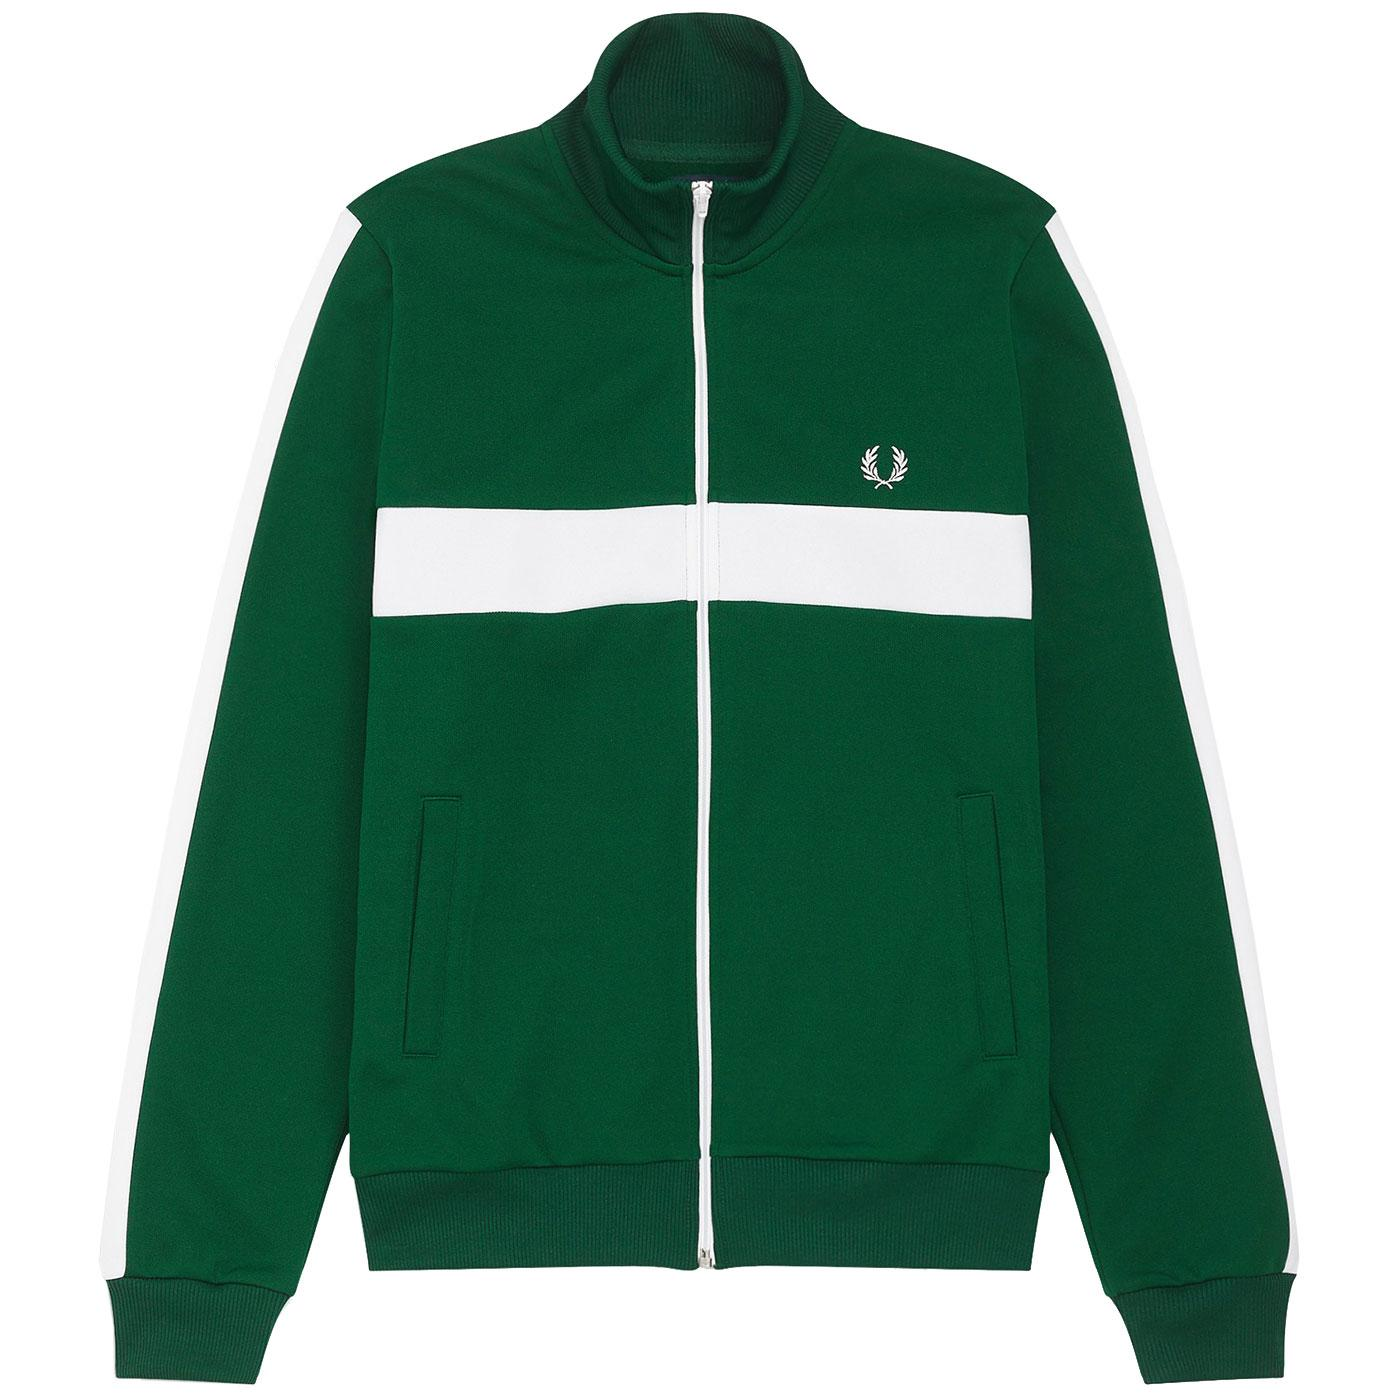 FRED PERRY Men's Retro Contrast Panel Track Jacket